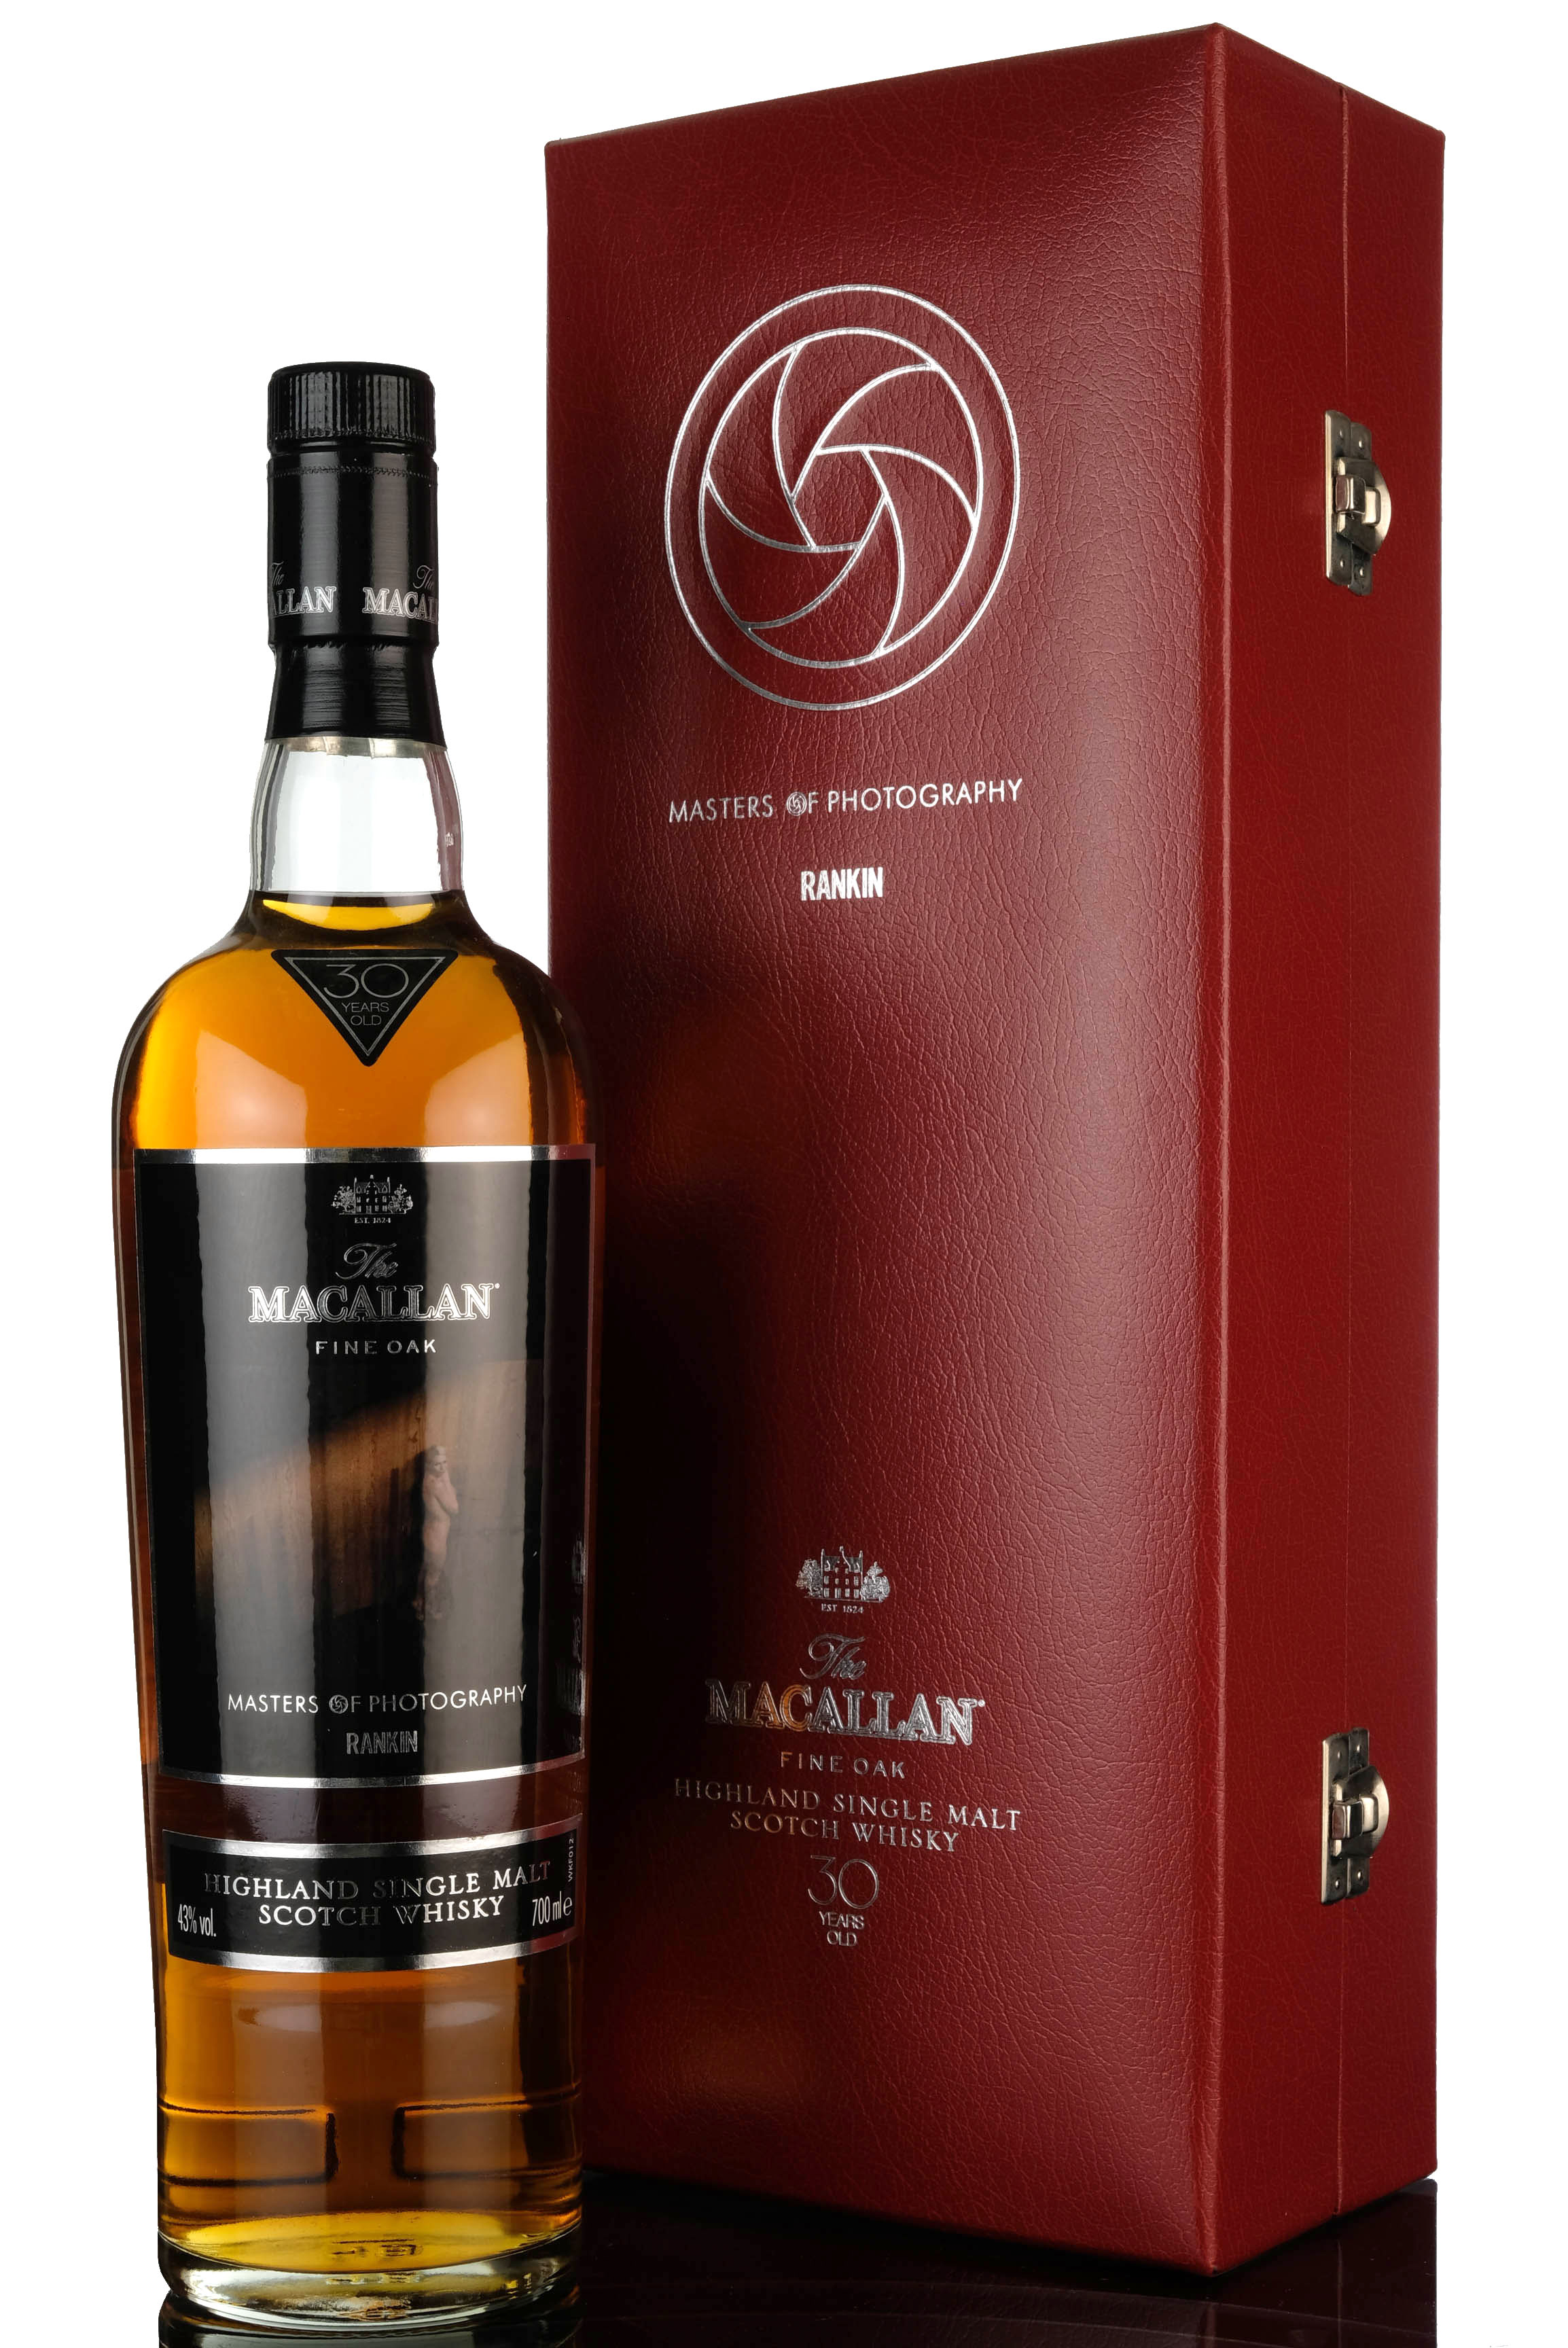 macallan 30 year old - masters of photography - rankin